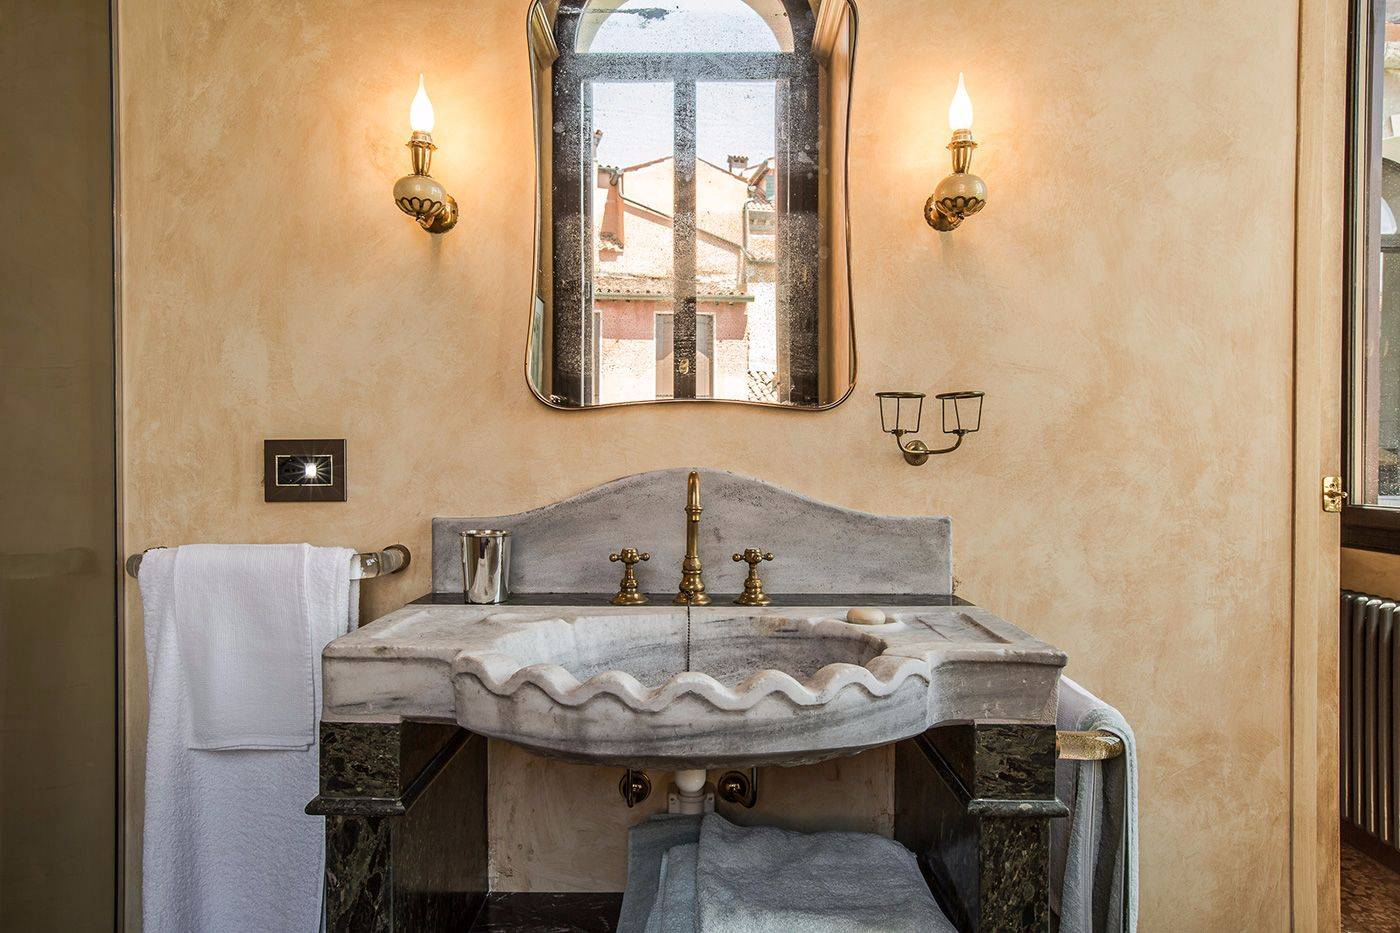 with antique stone wash-basin and large shower cabin